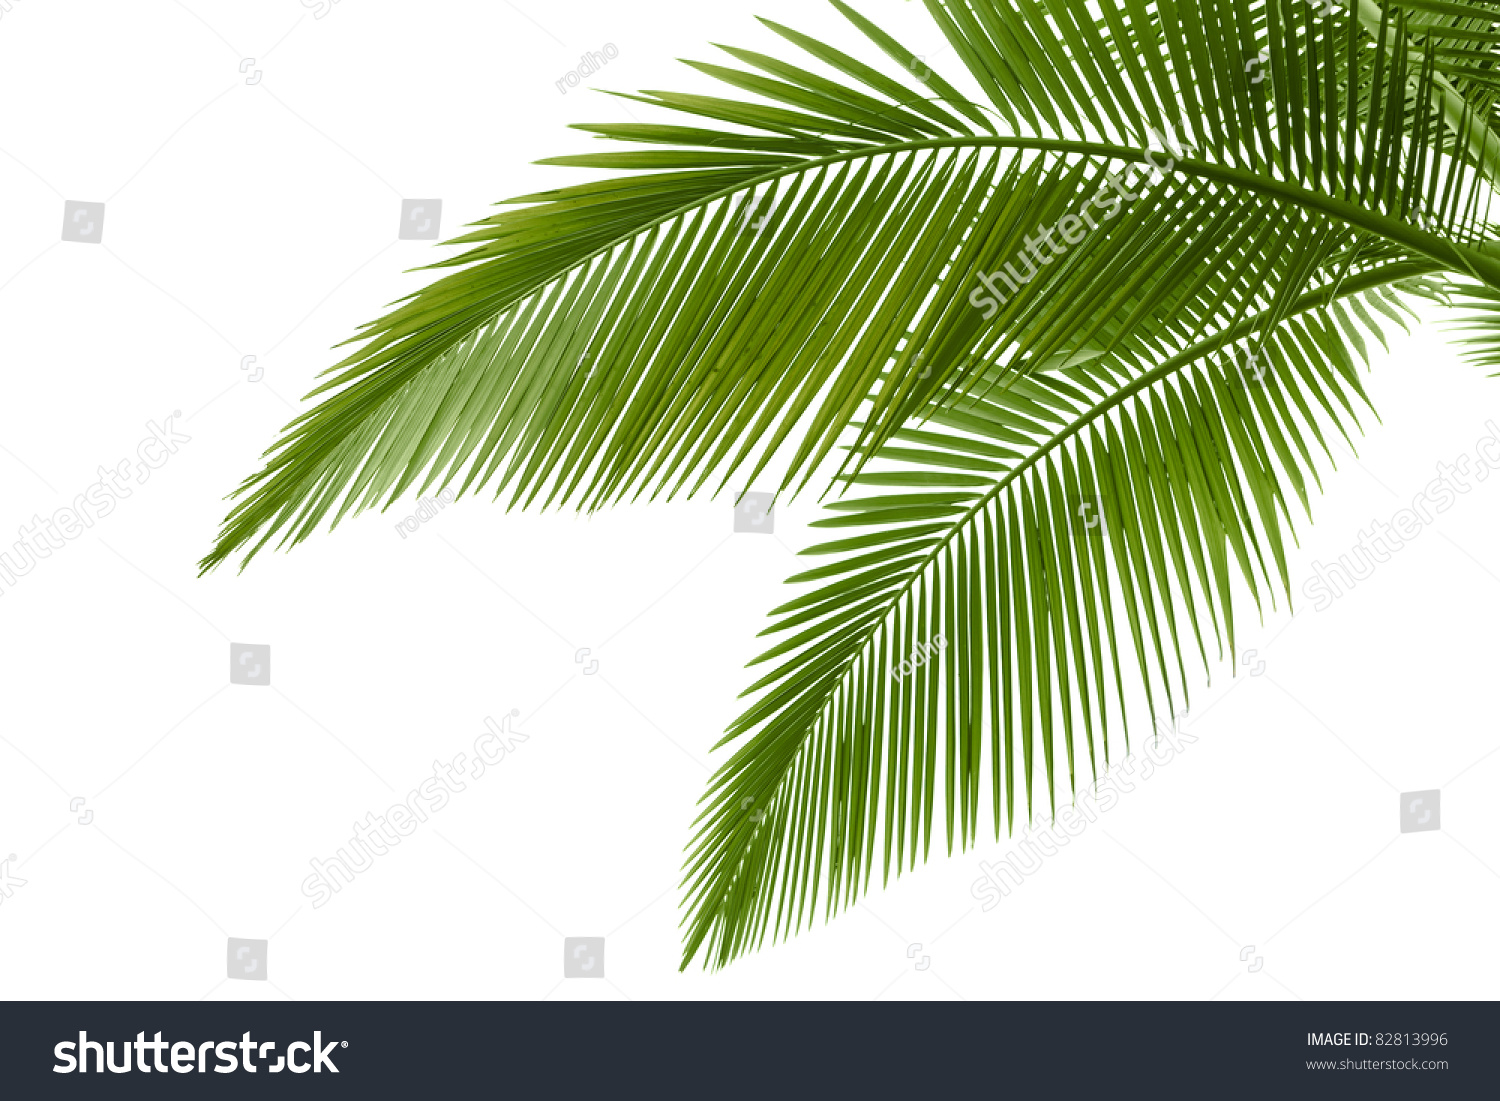 palm tree krone branches - photo #5